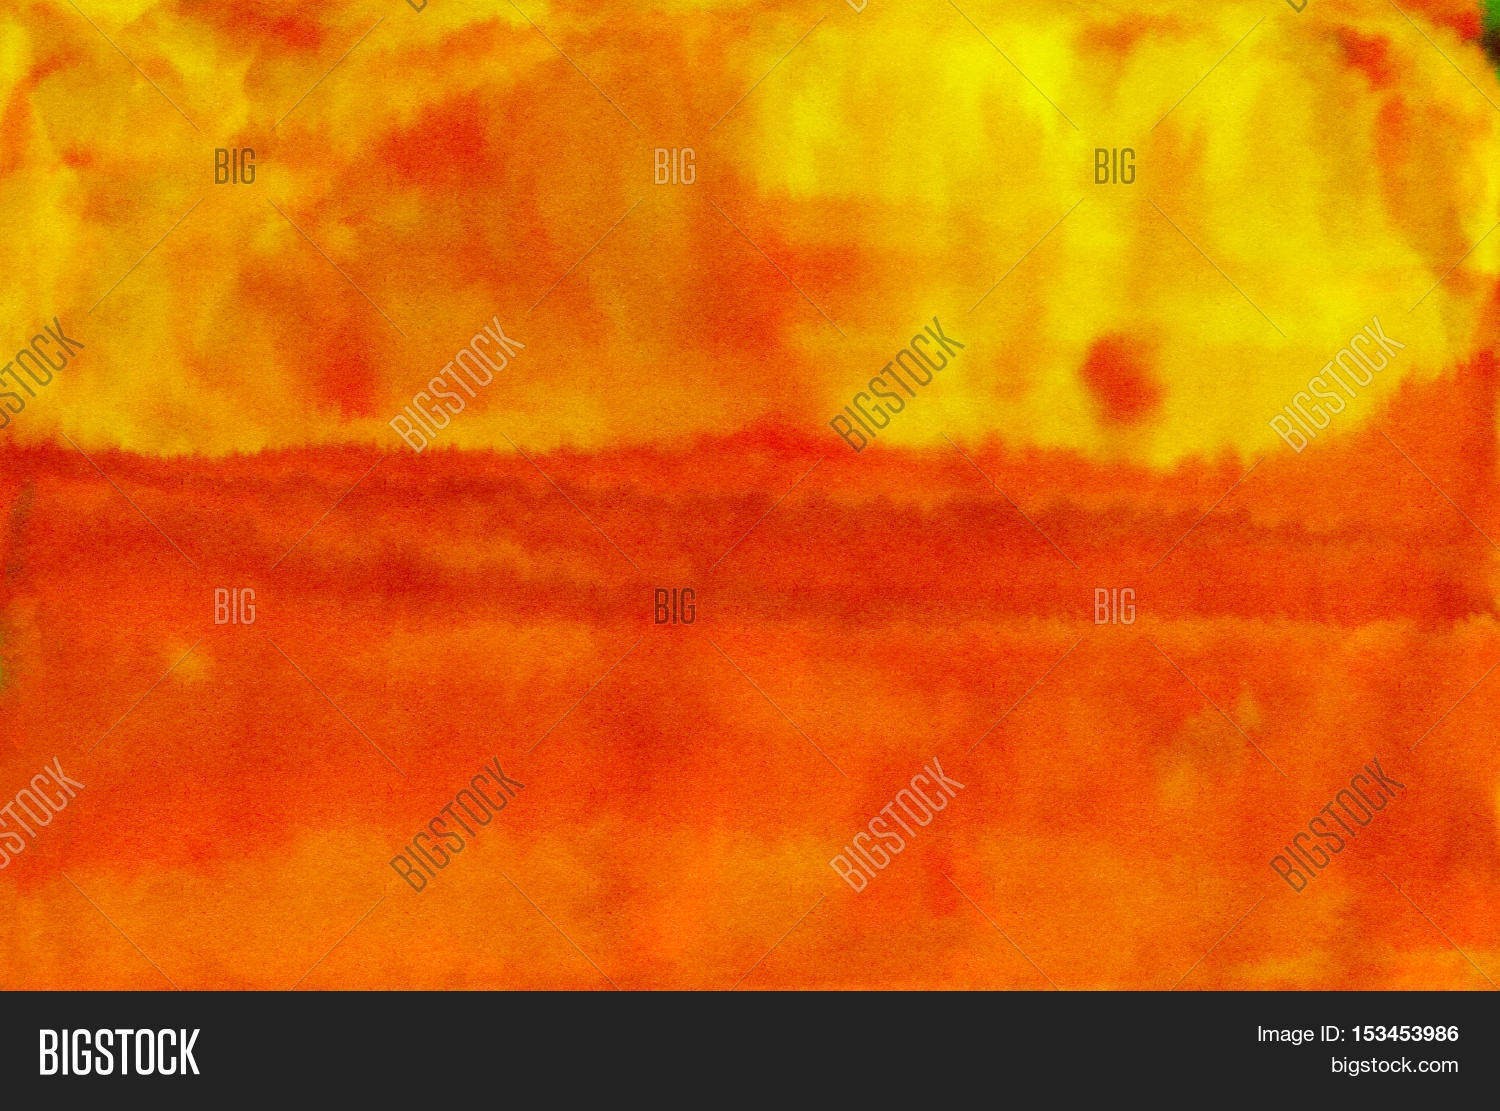 Abstract Orange Watercolor Art Drawing For Modern Wool Carpet Design Red And Yellow Watercolour Wet